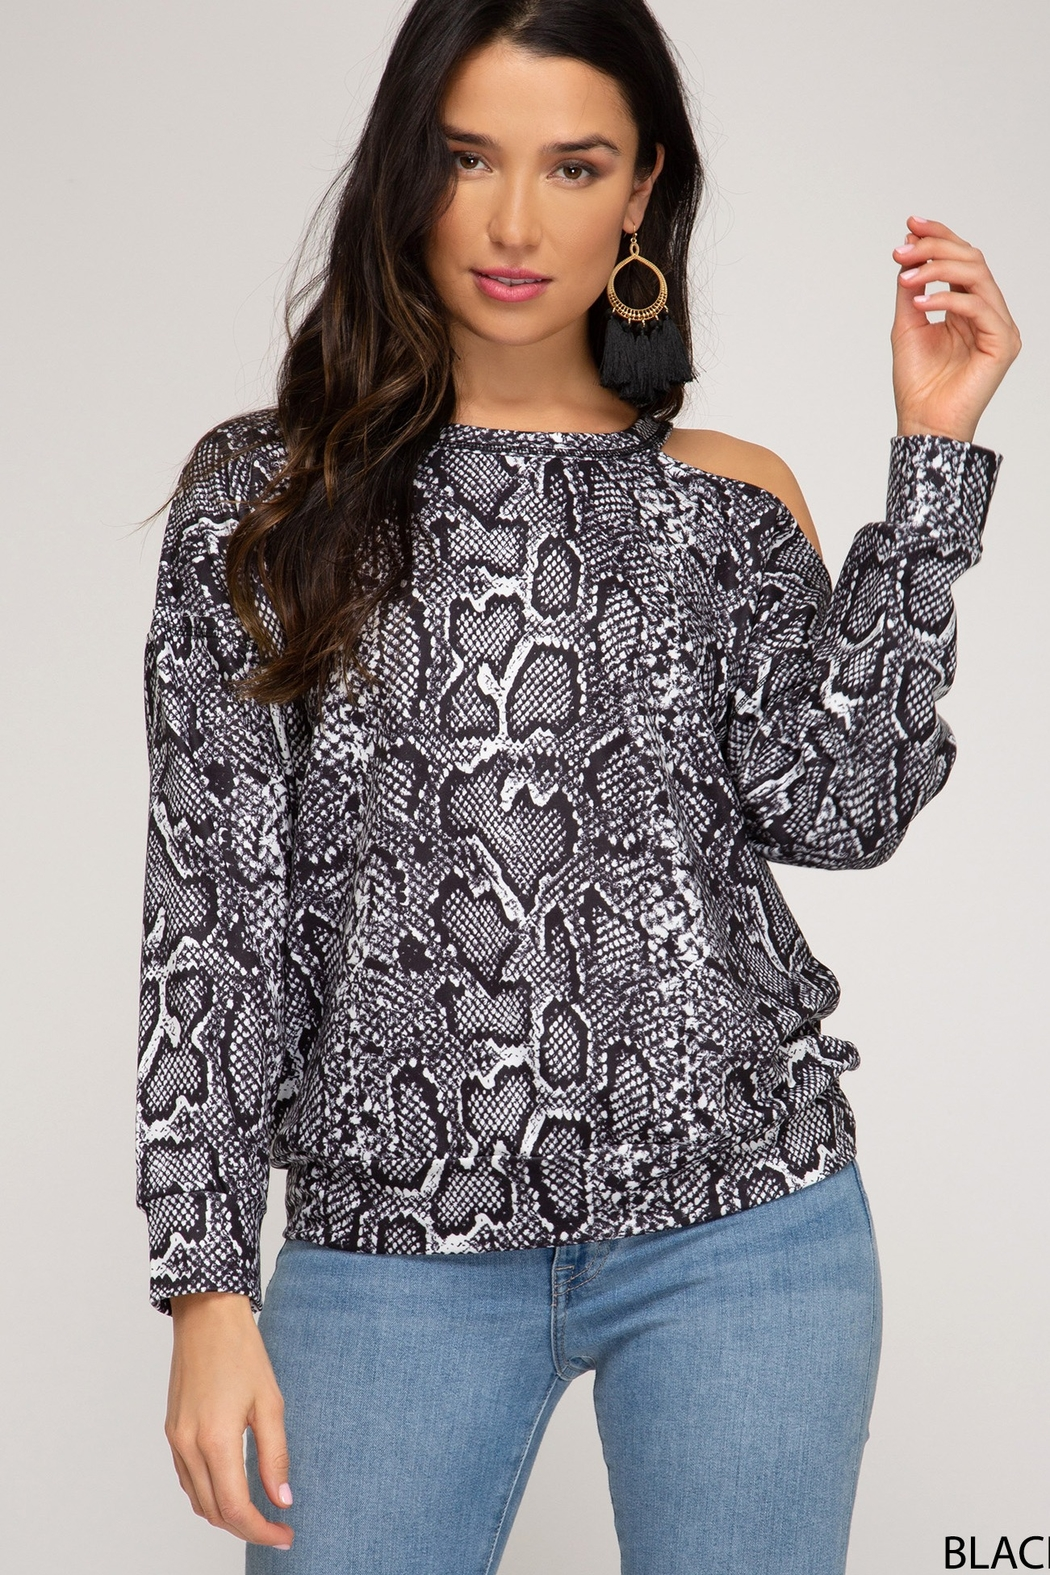 She and Sky LONG SLEEVE REPTILE PRINTED TOP - Main Image